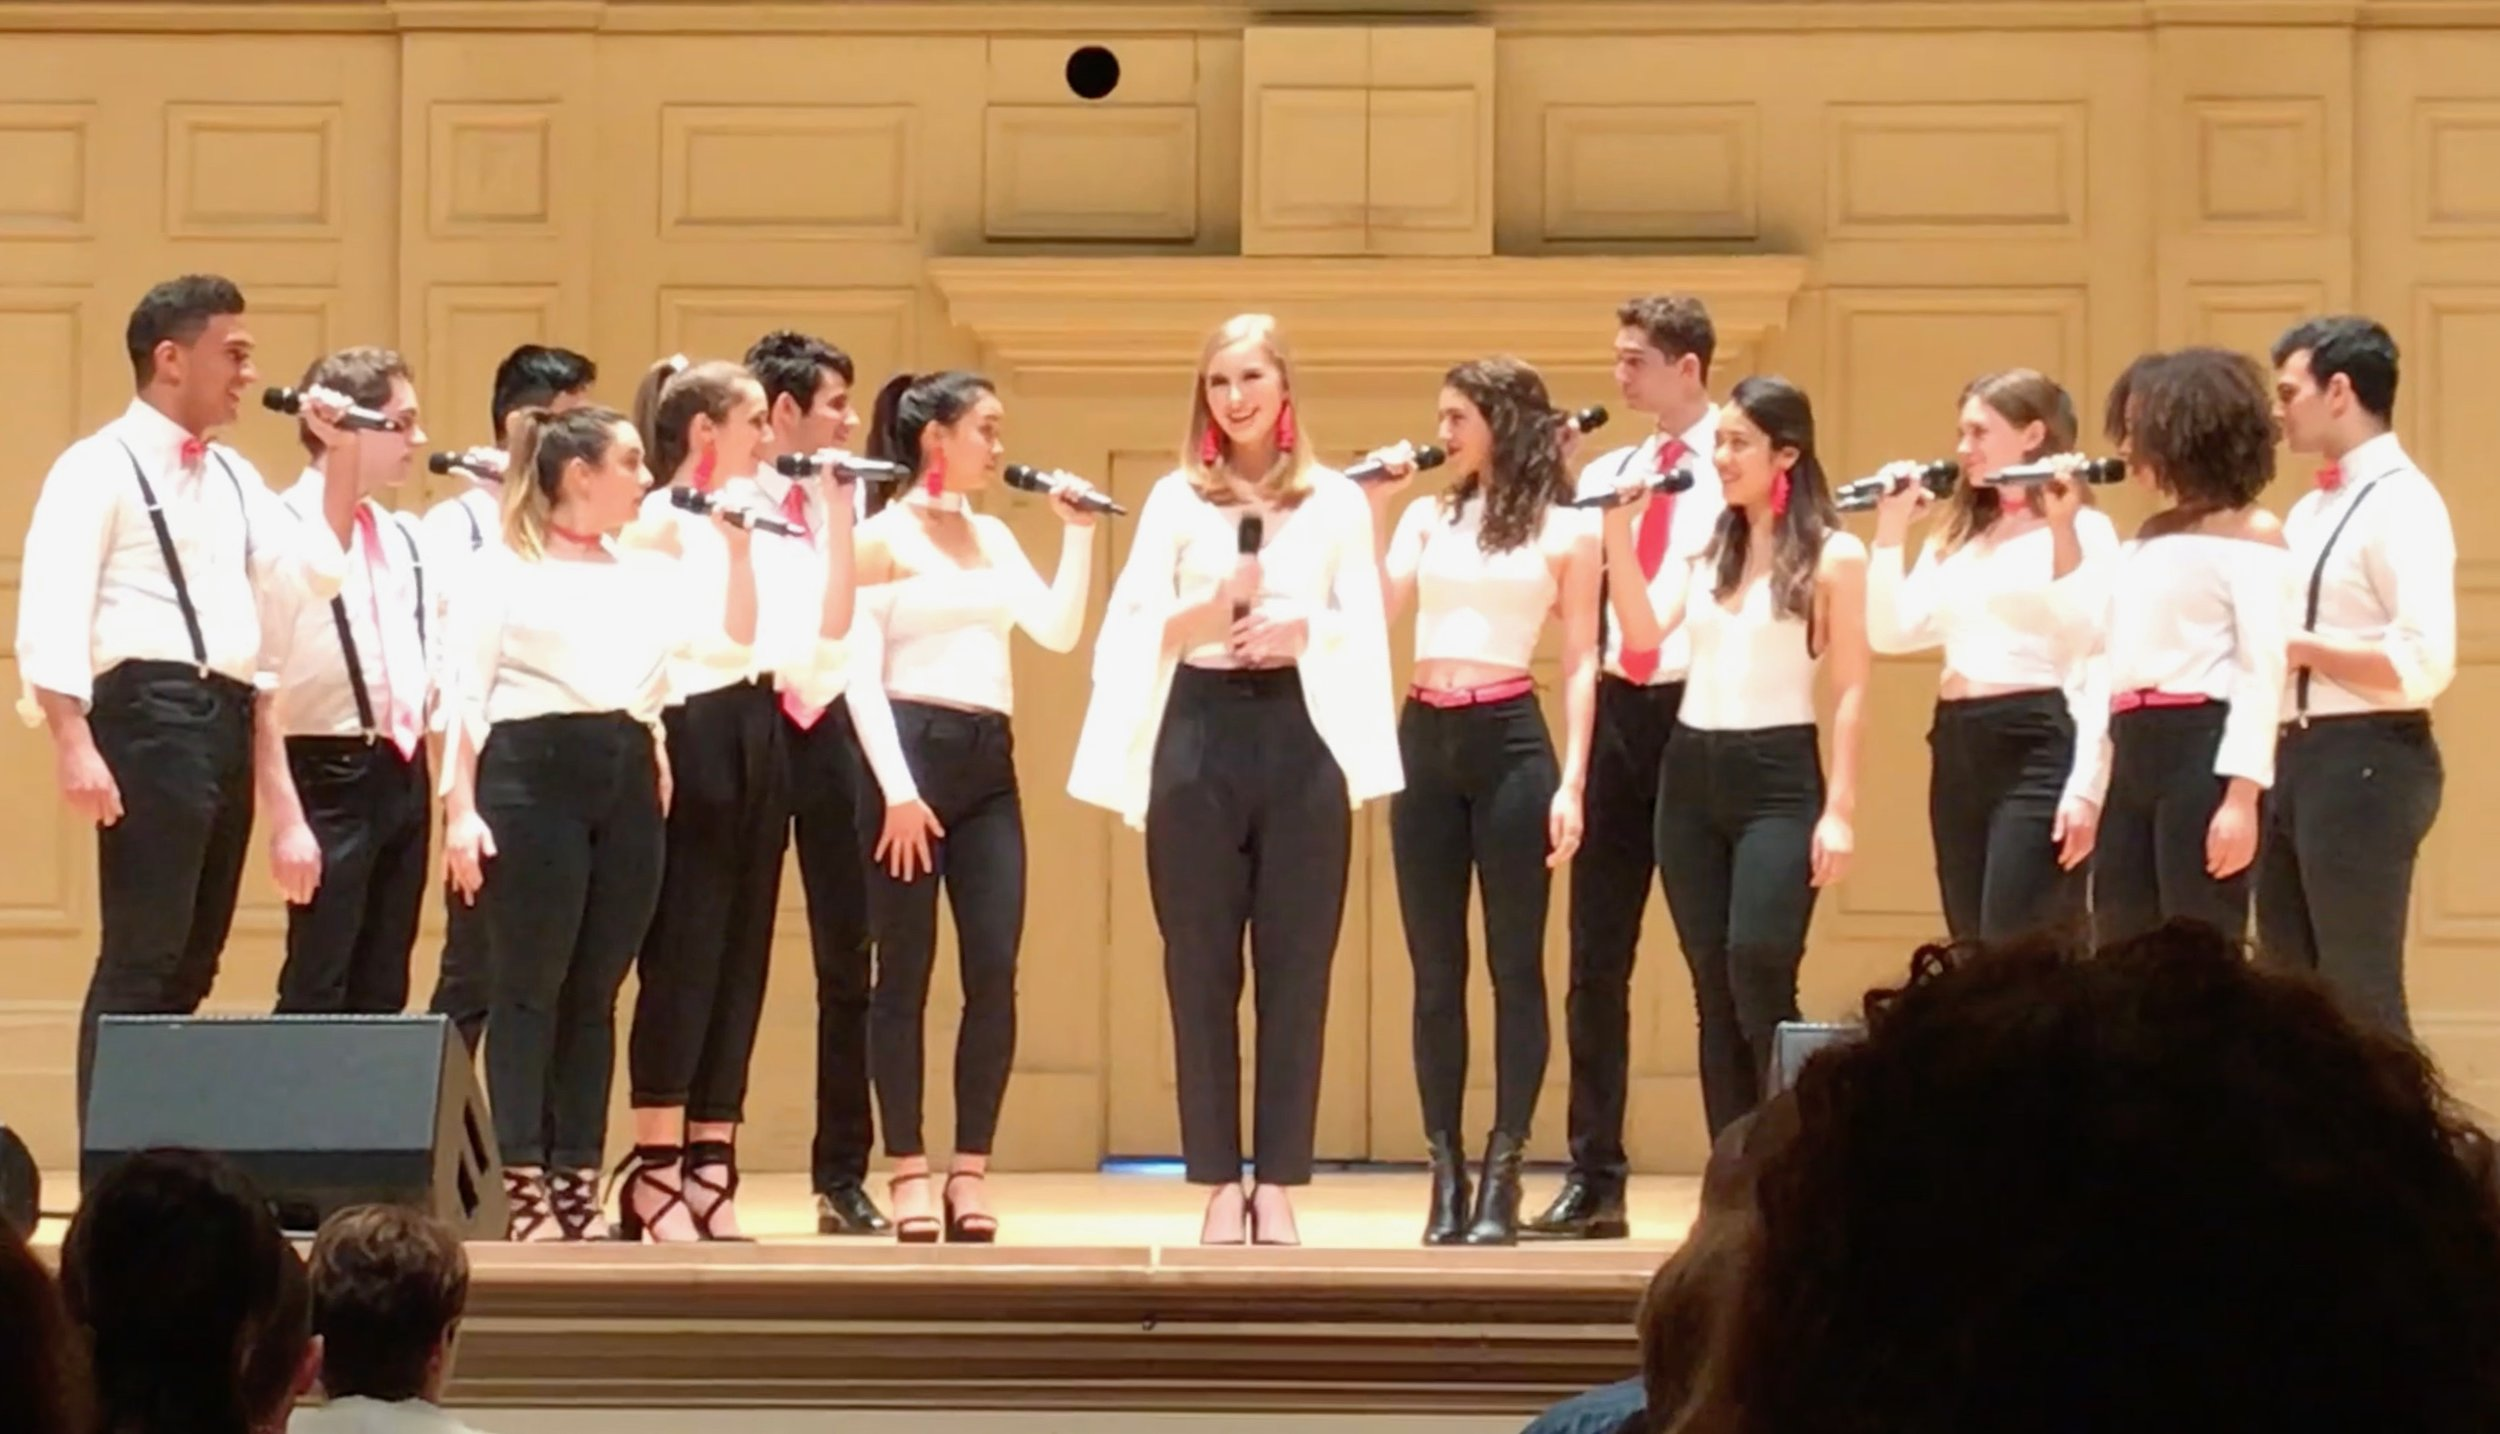 Opportunes performing at Boston Symphony Hall, ICCA Semifinals 2018